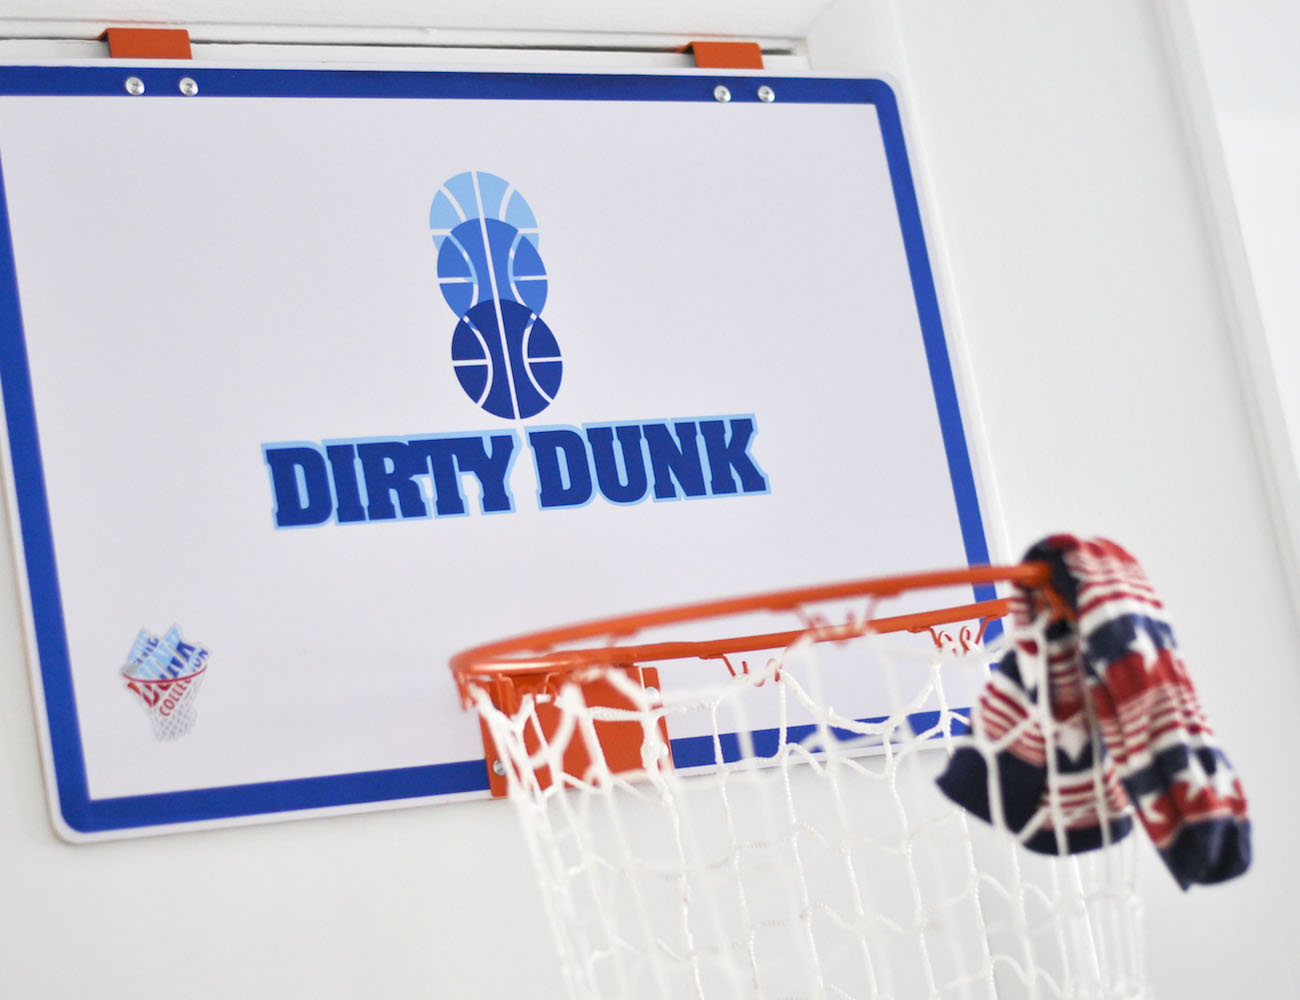 The Dirty Dunk – The Original Over-the-Door Basketball Hoop Laundry Hamper